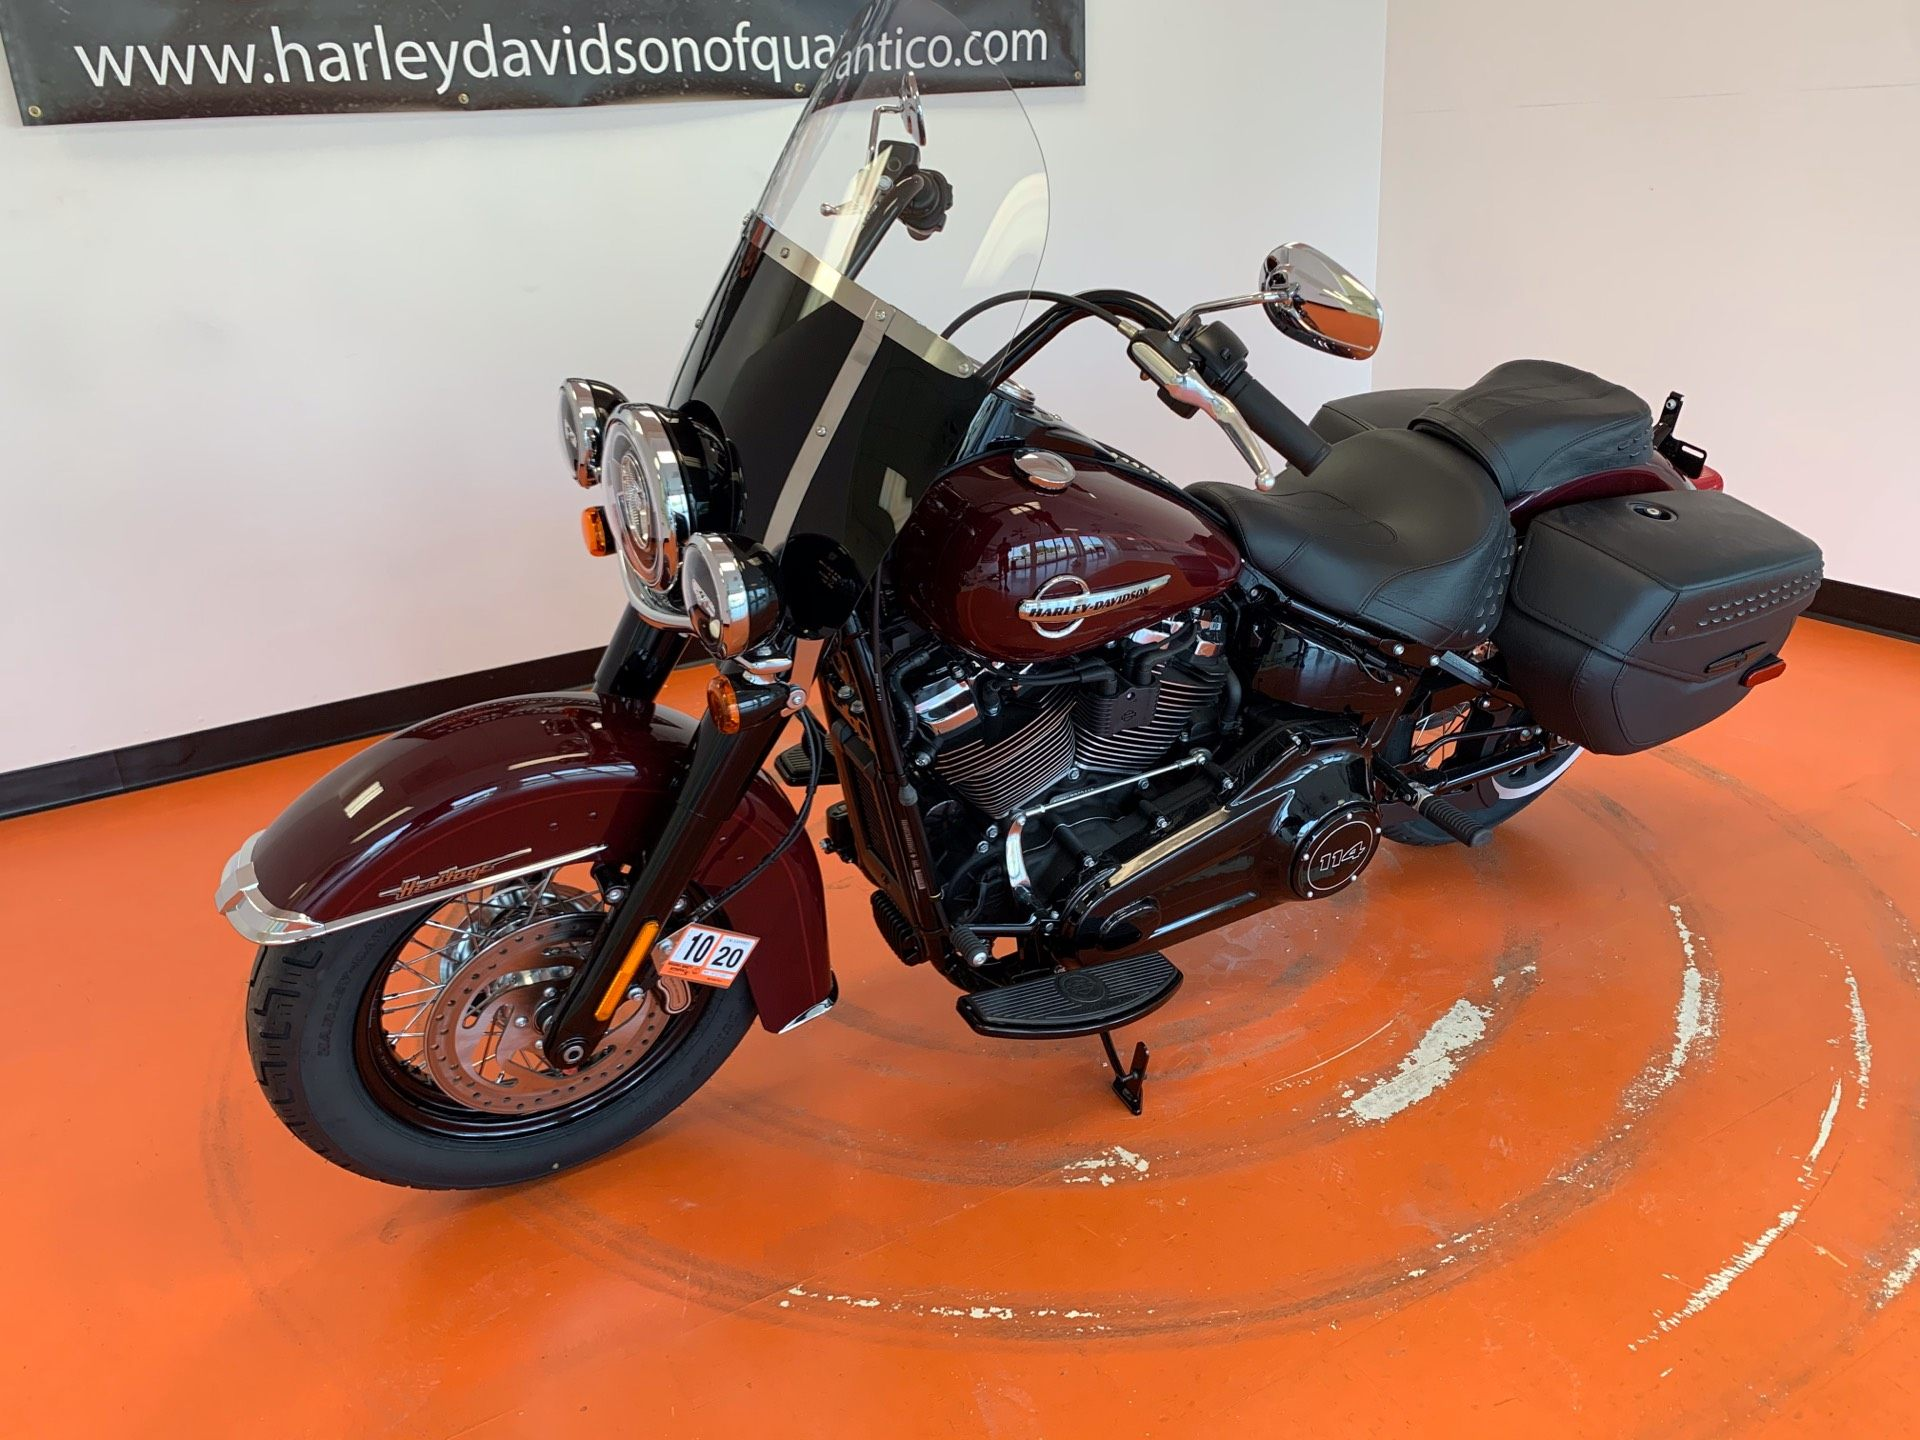 2020 Harley-Davidson Heritage Classic 114 in Dumfries, Virginia - Photo 19